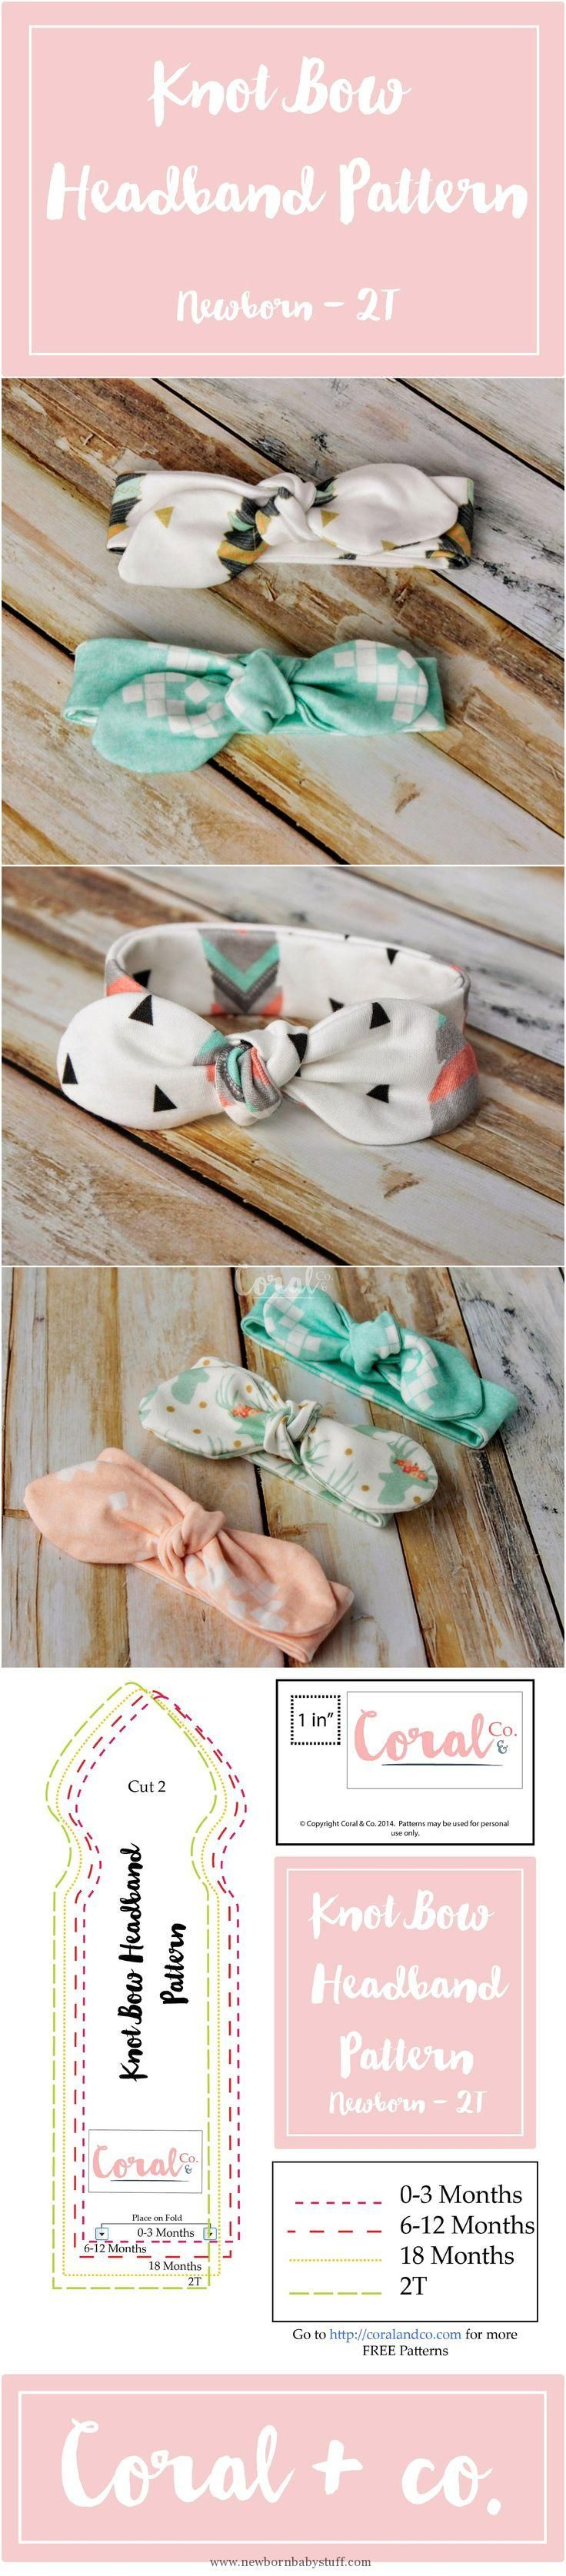 Child Knitting Patterns FREE Knotted Headband Sample and Tutorial. Straightforward DIY Knit Knot Bow Headband Sample is available in sizes New child - 2T. Take a look at extra free patterns from Coral and Co.